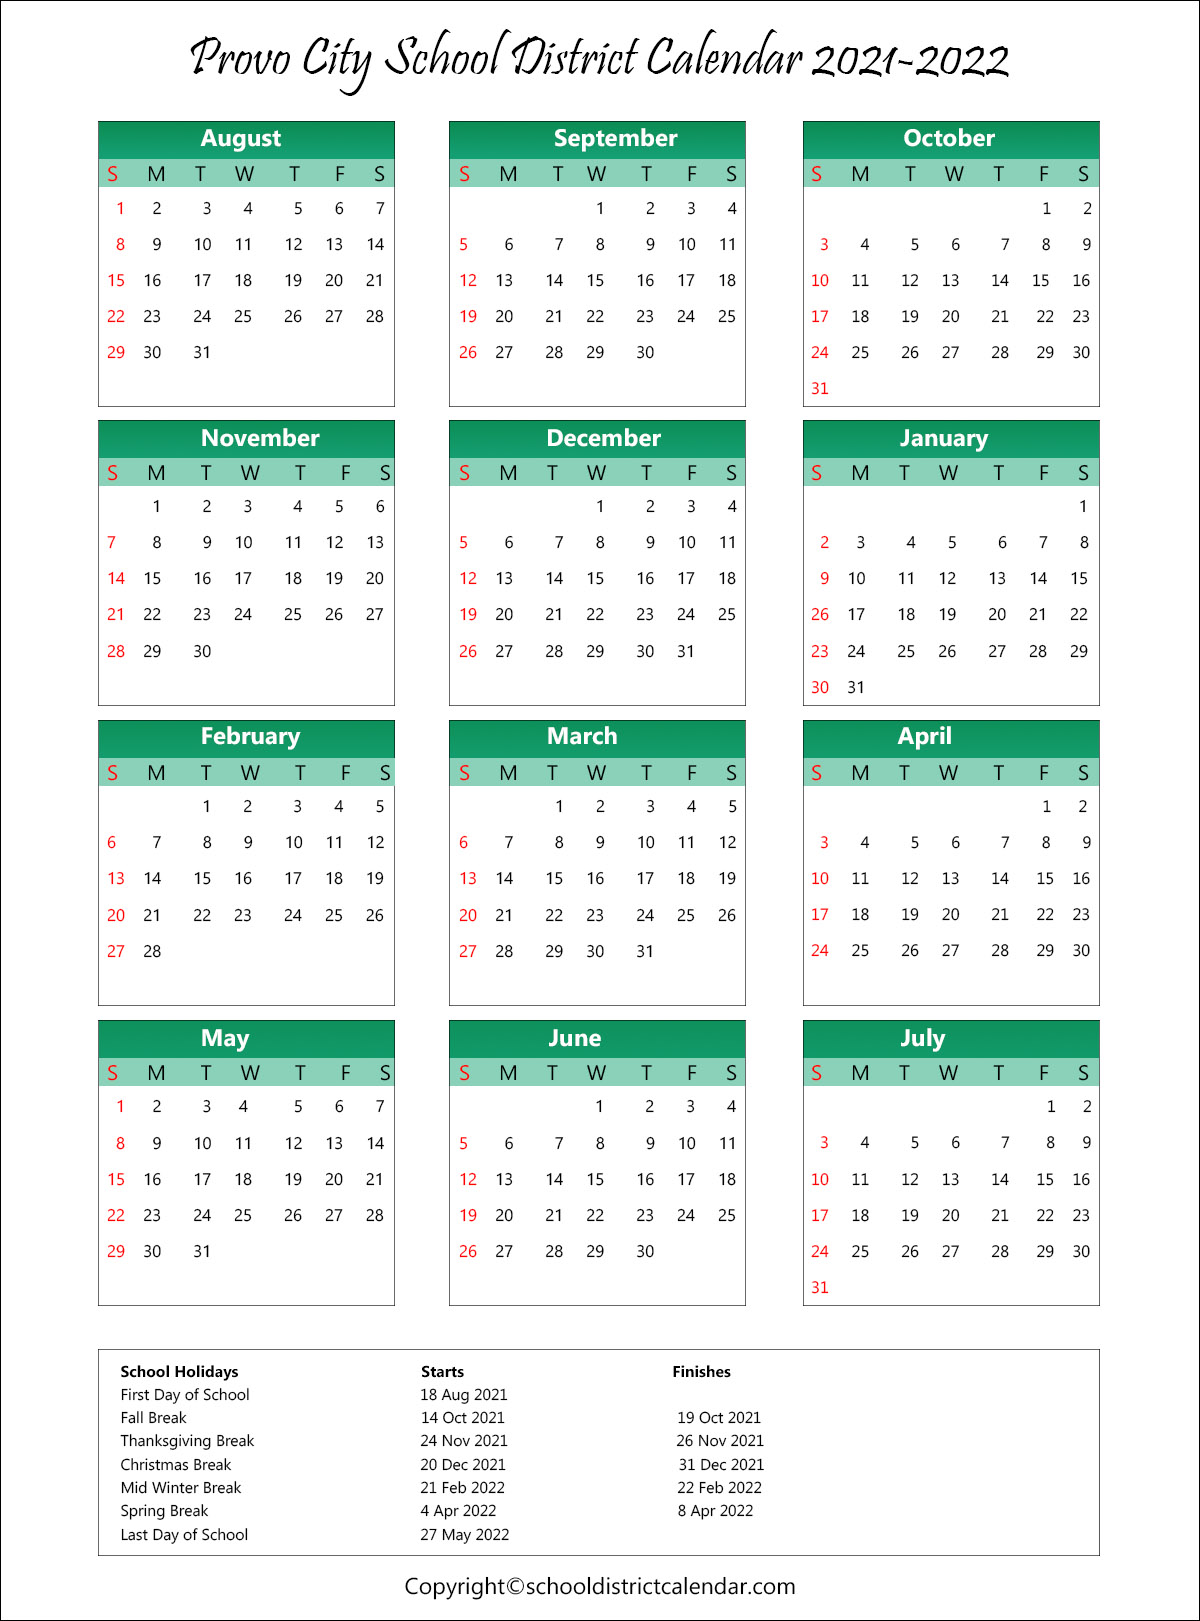 Pictures of Kent School District Calendar 2021-22